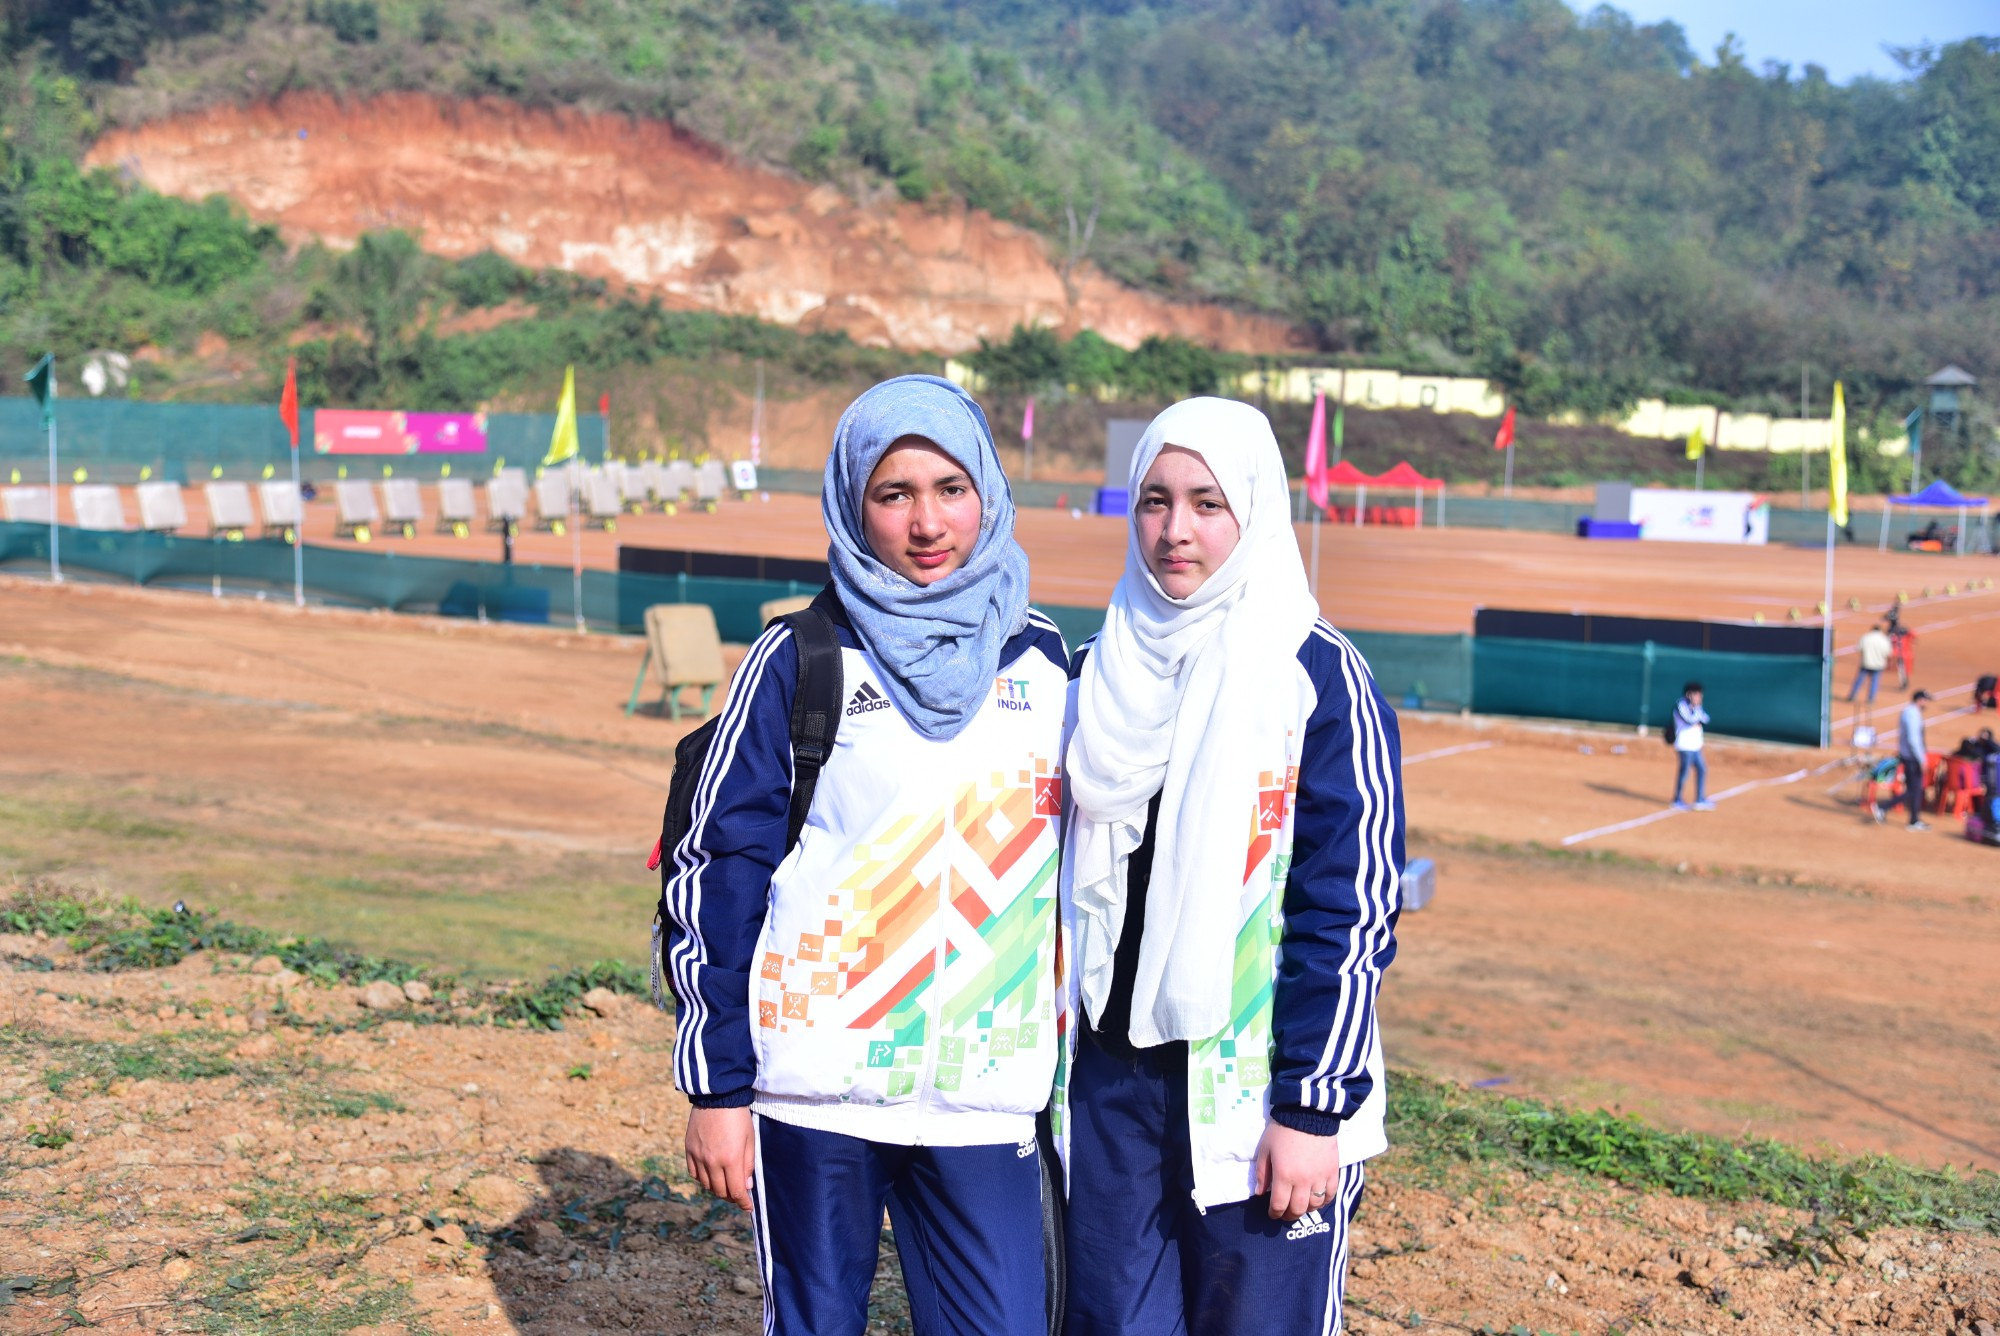 Archers Nusrat Rehman and Yasmeen Batool from Ladakh at the Khelo India Youth Games 2020 archery venue.